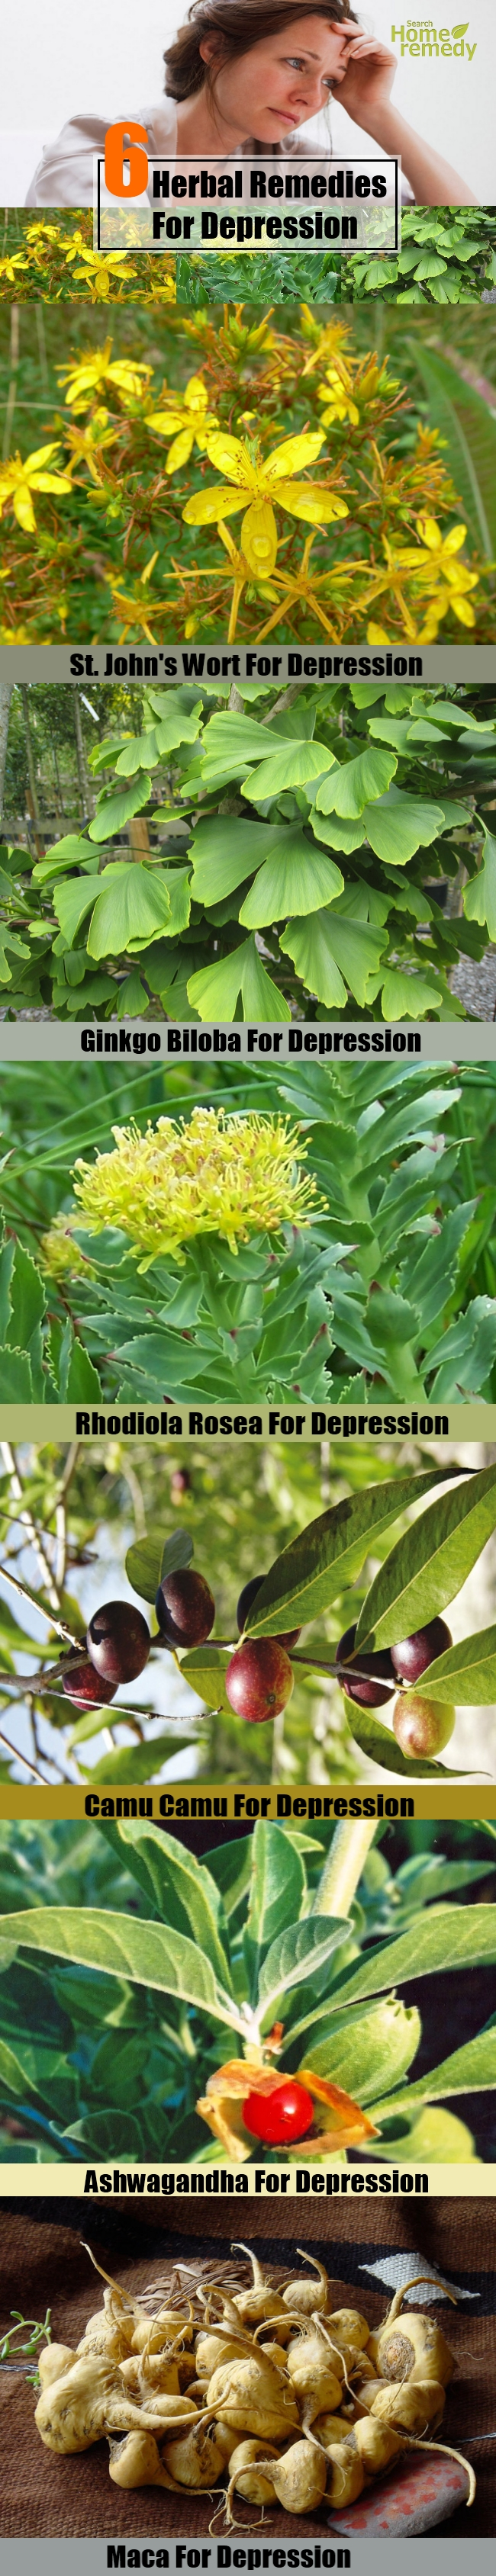 6 Popular Herbal Remedies For Depression